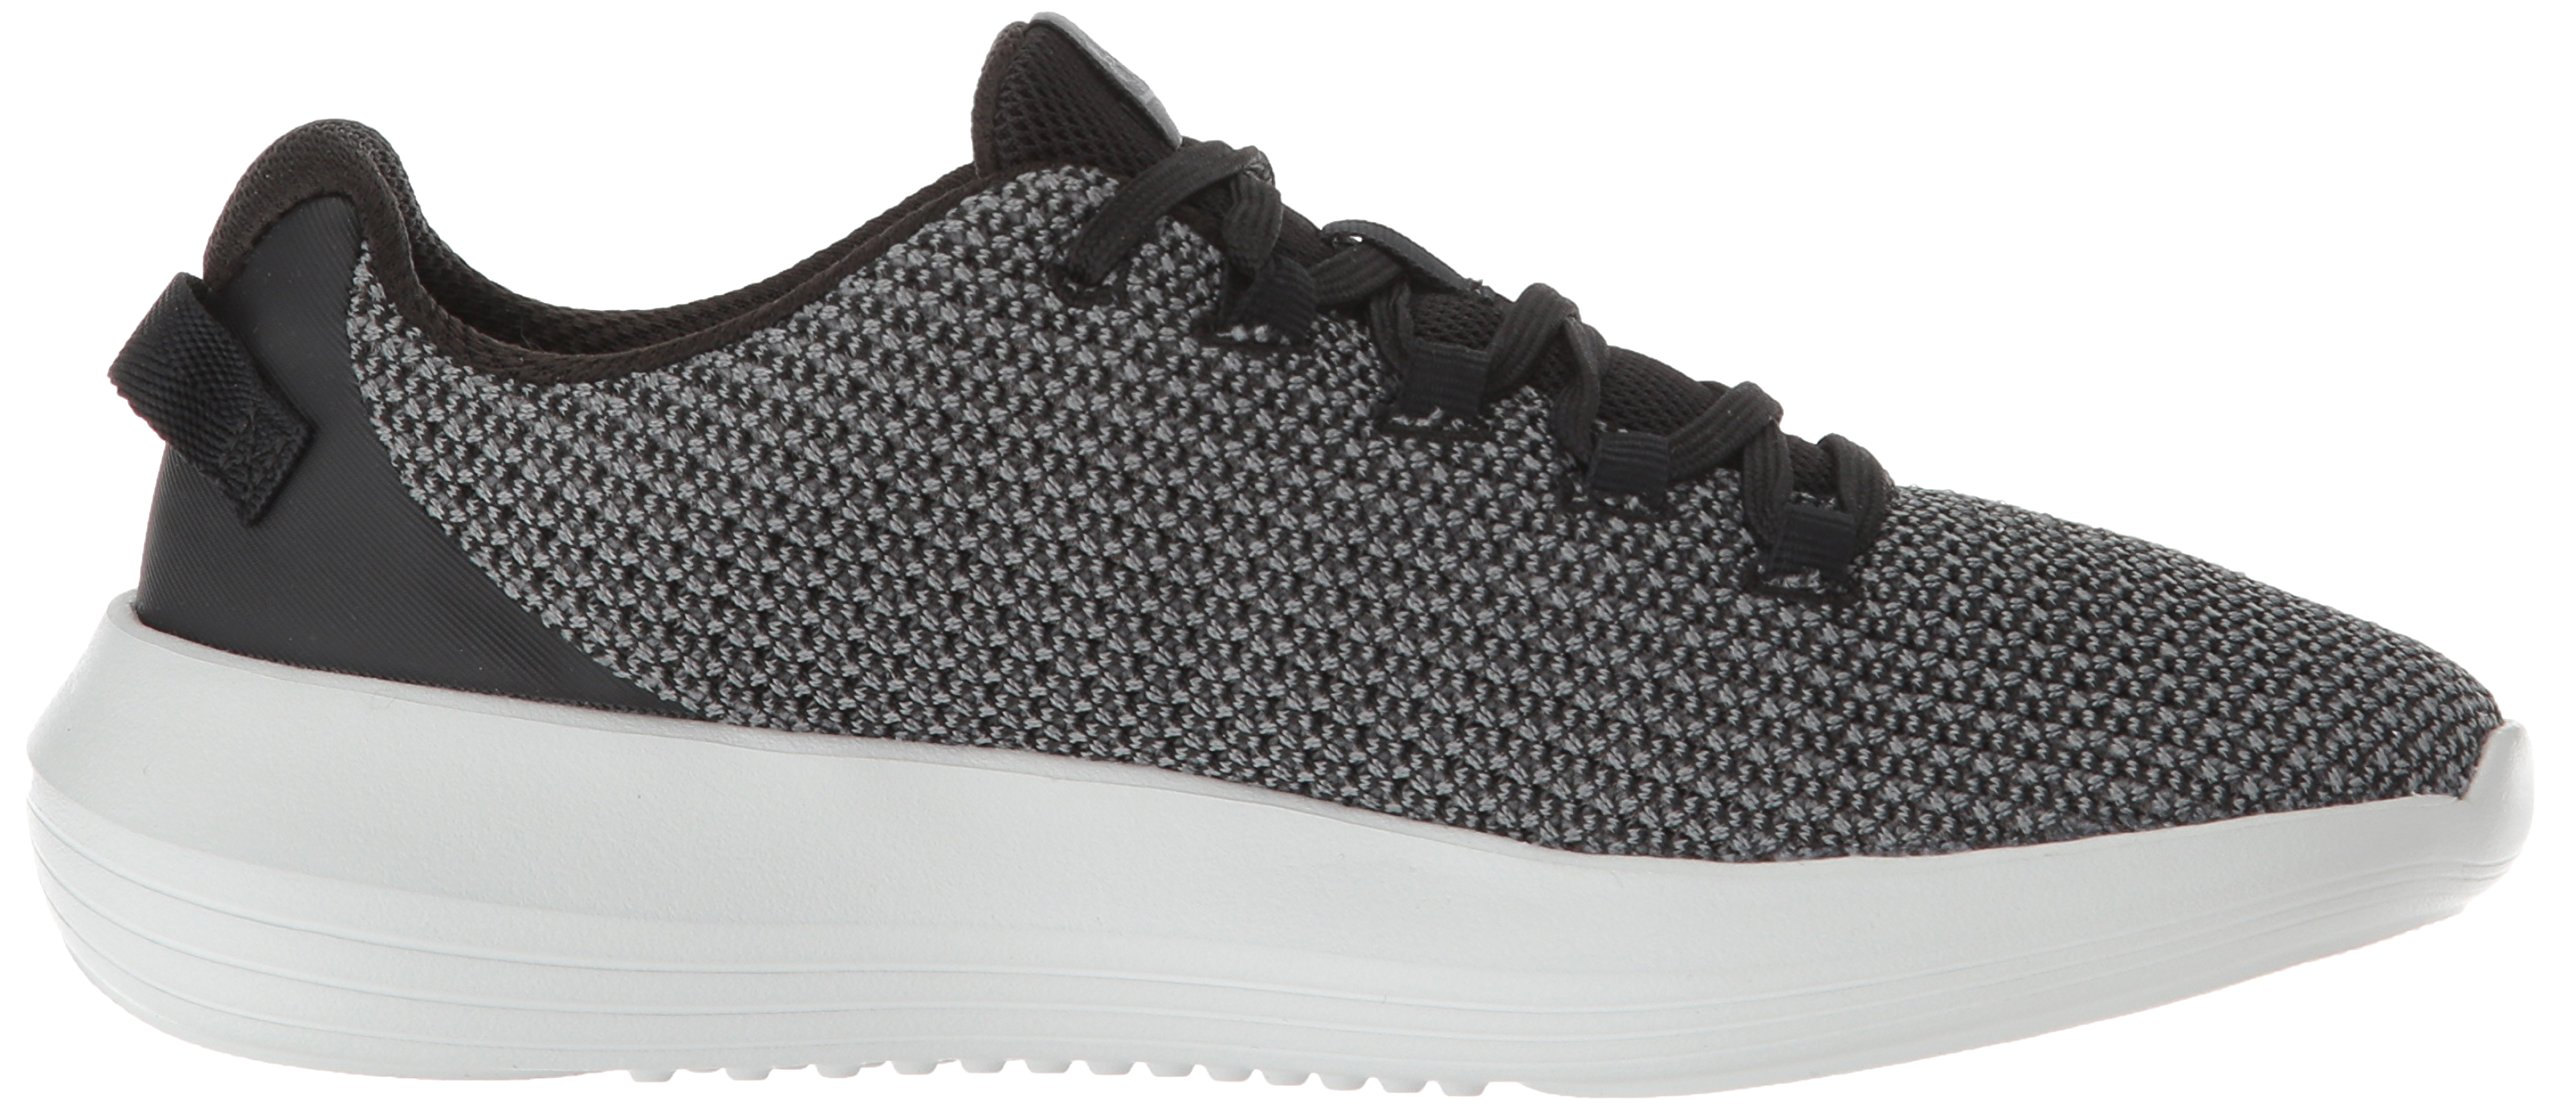 81PFTK7ICPL - Under Armour Women's's Ripple Competition Running Shoes